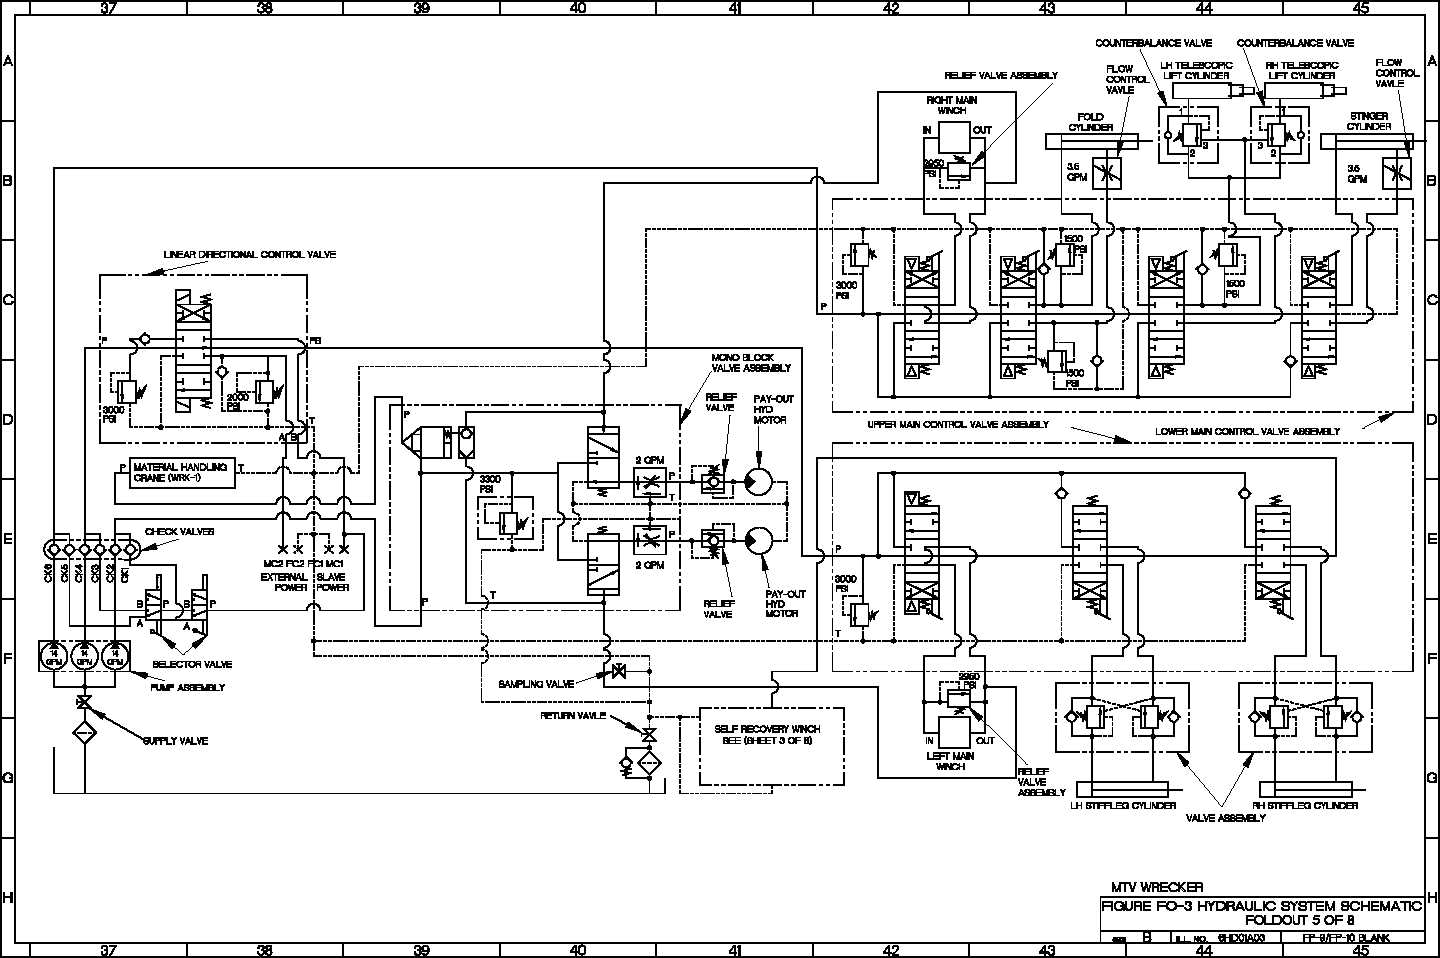 hight resolution of figure fo 3 hydraulic system schematic foldout 5 of 8 tm 9 2320 366 34 4 677